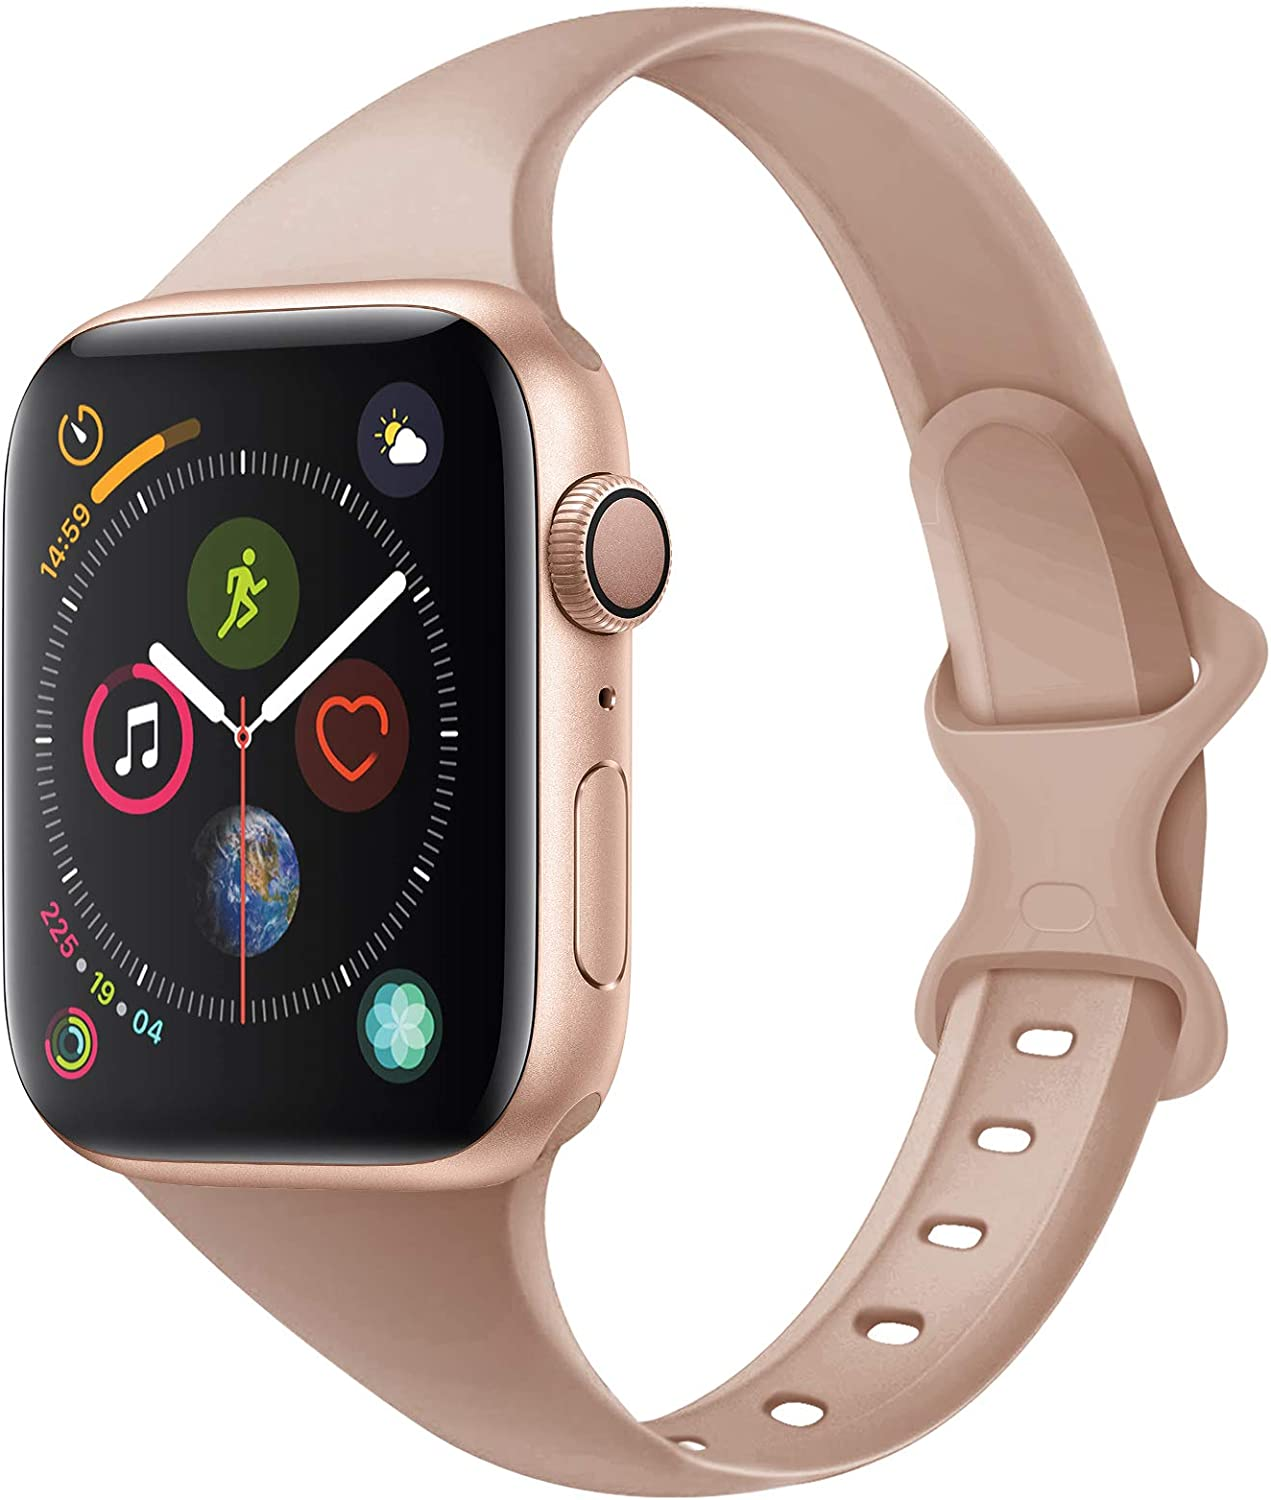 Acrbiutu Bands Compatible with Apple Watch 38mm 40mm 42mm 44mm, Slim Thin Narrow Replacement Silicone Sport Accessory Strap Wristband Compatible for iWatch SE Series 1/2/3/4/5/6 Women Men, C,Milk Tea